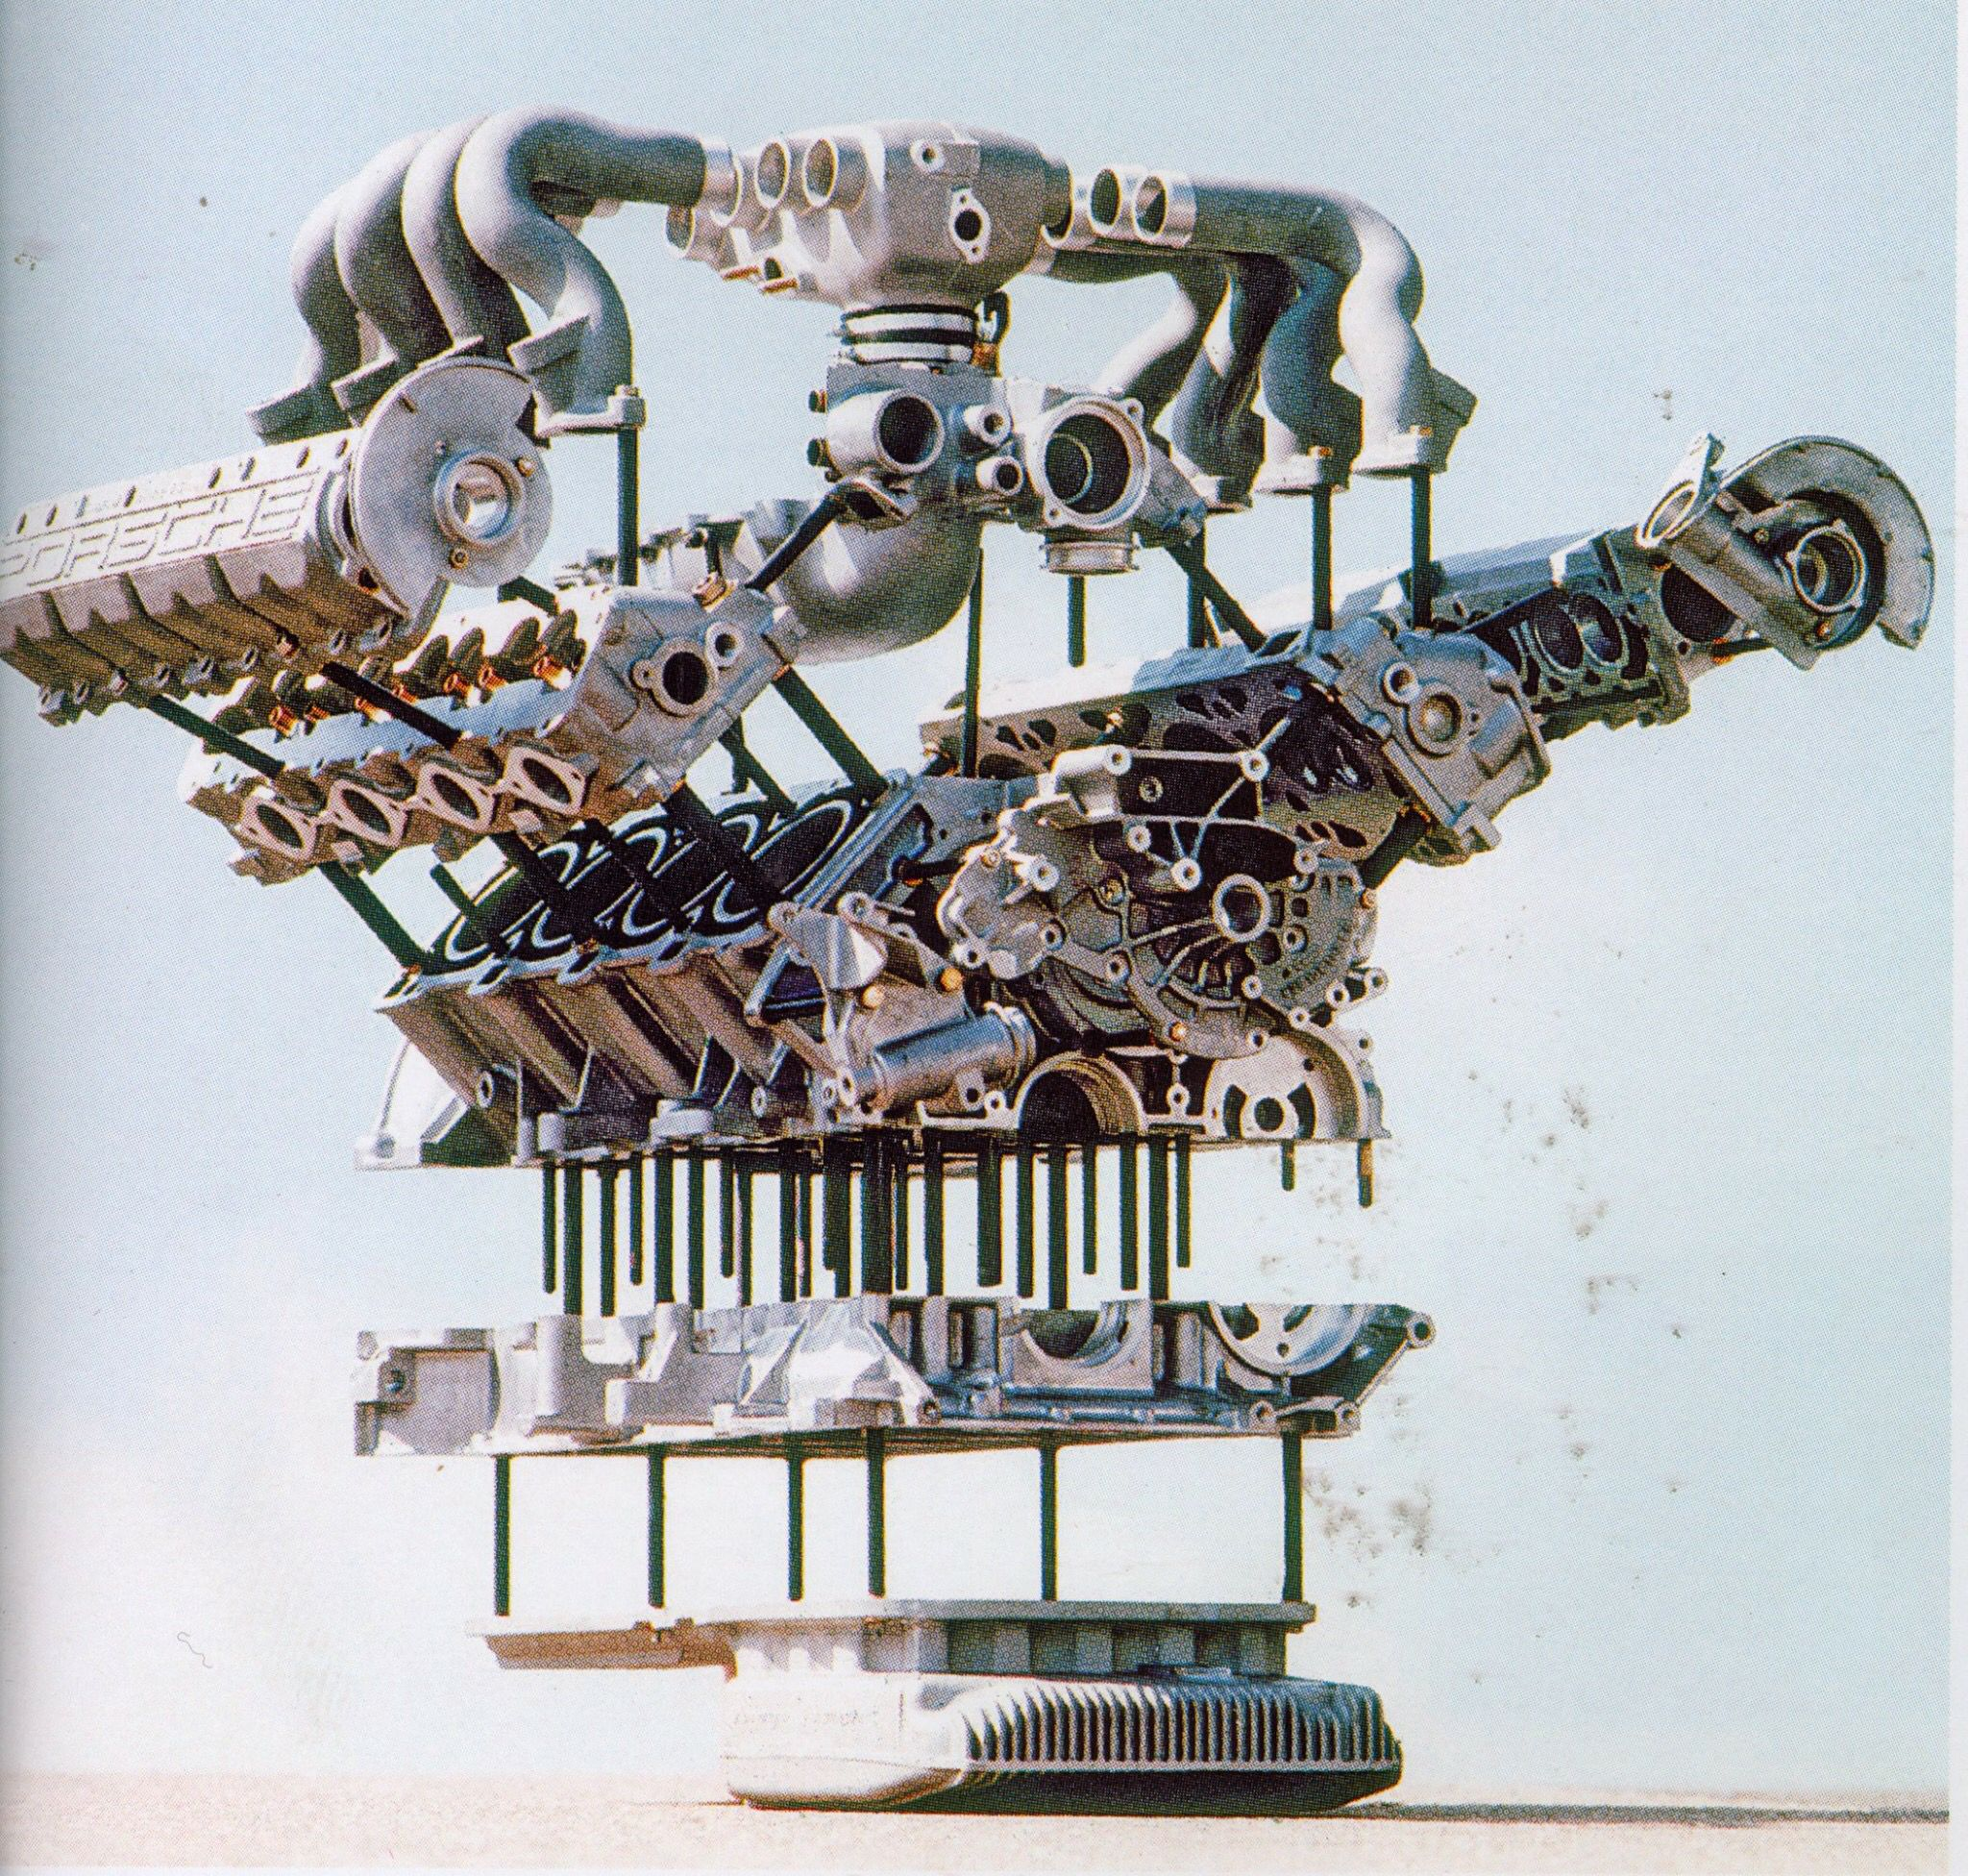 hight resolution of porsche 928 engine exploded view